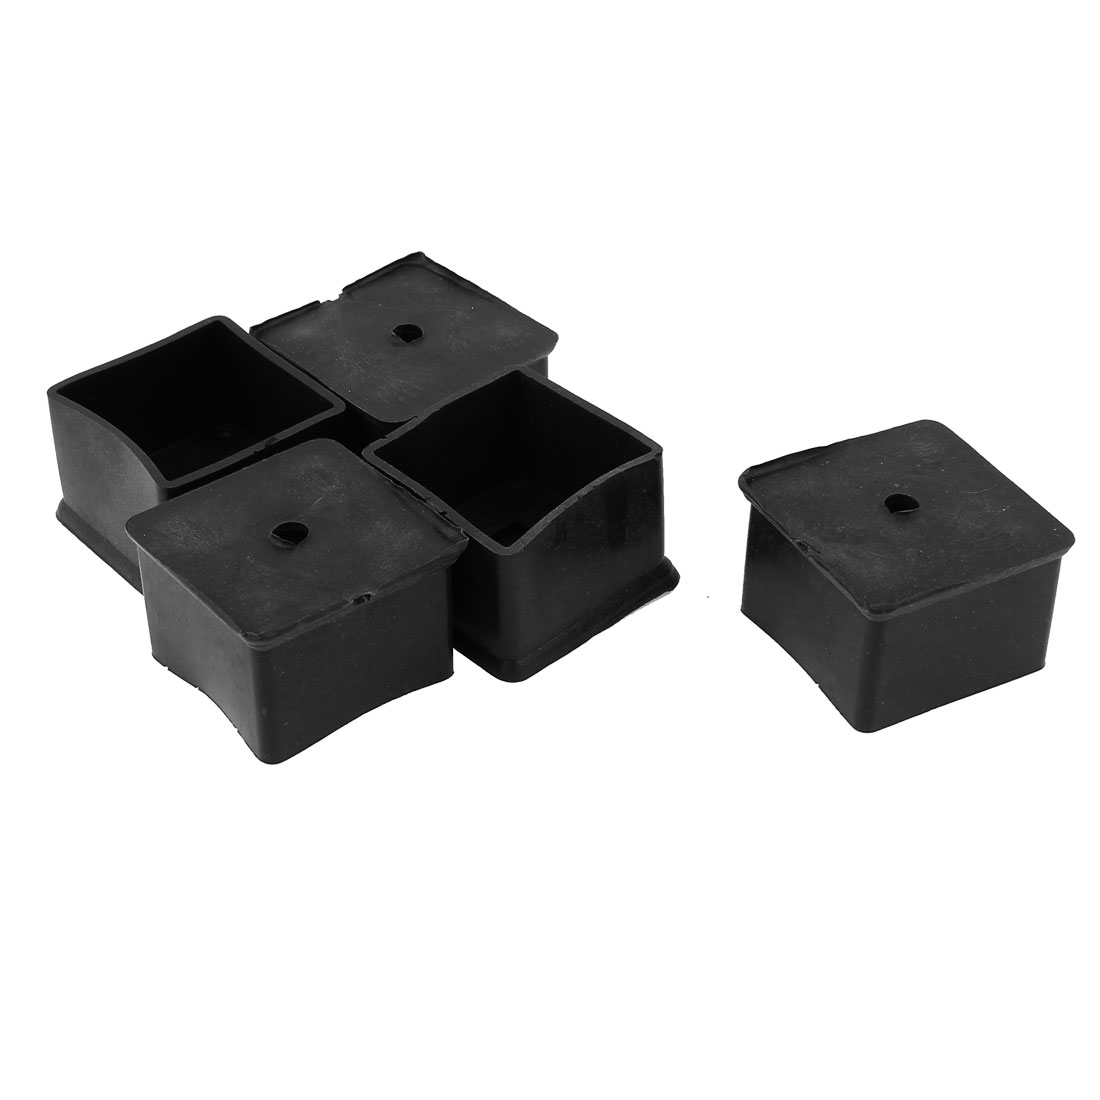 40mmx40mm Square Furniture Leg Protection Rubber Chair Feet Ferrules Black 5Pcs